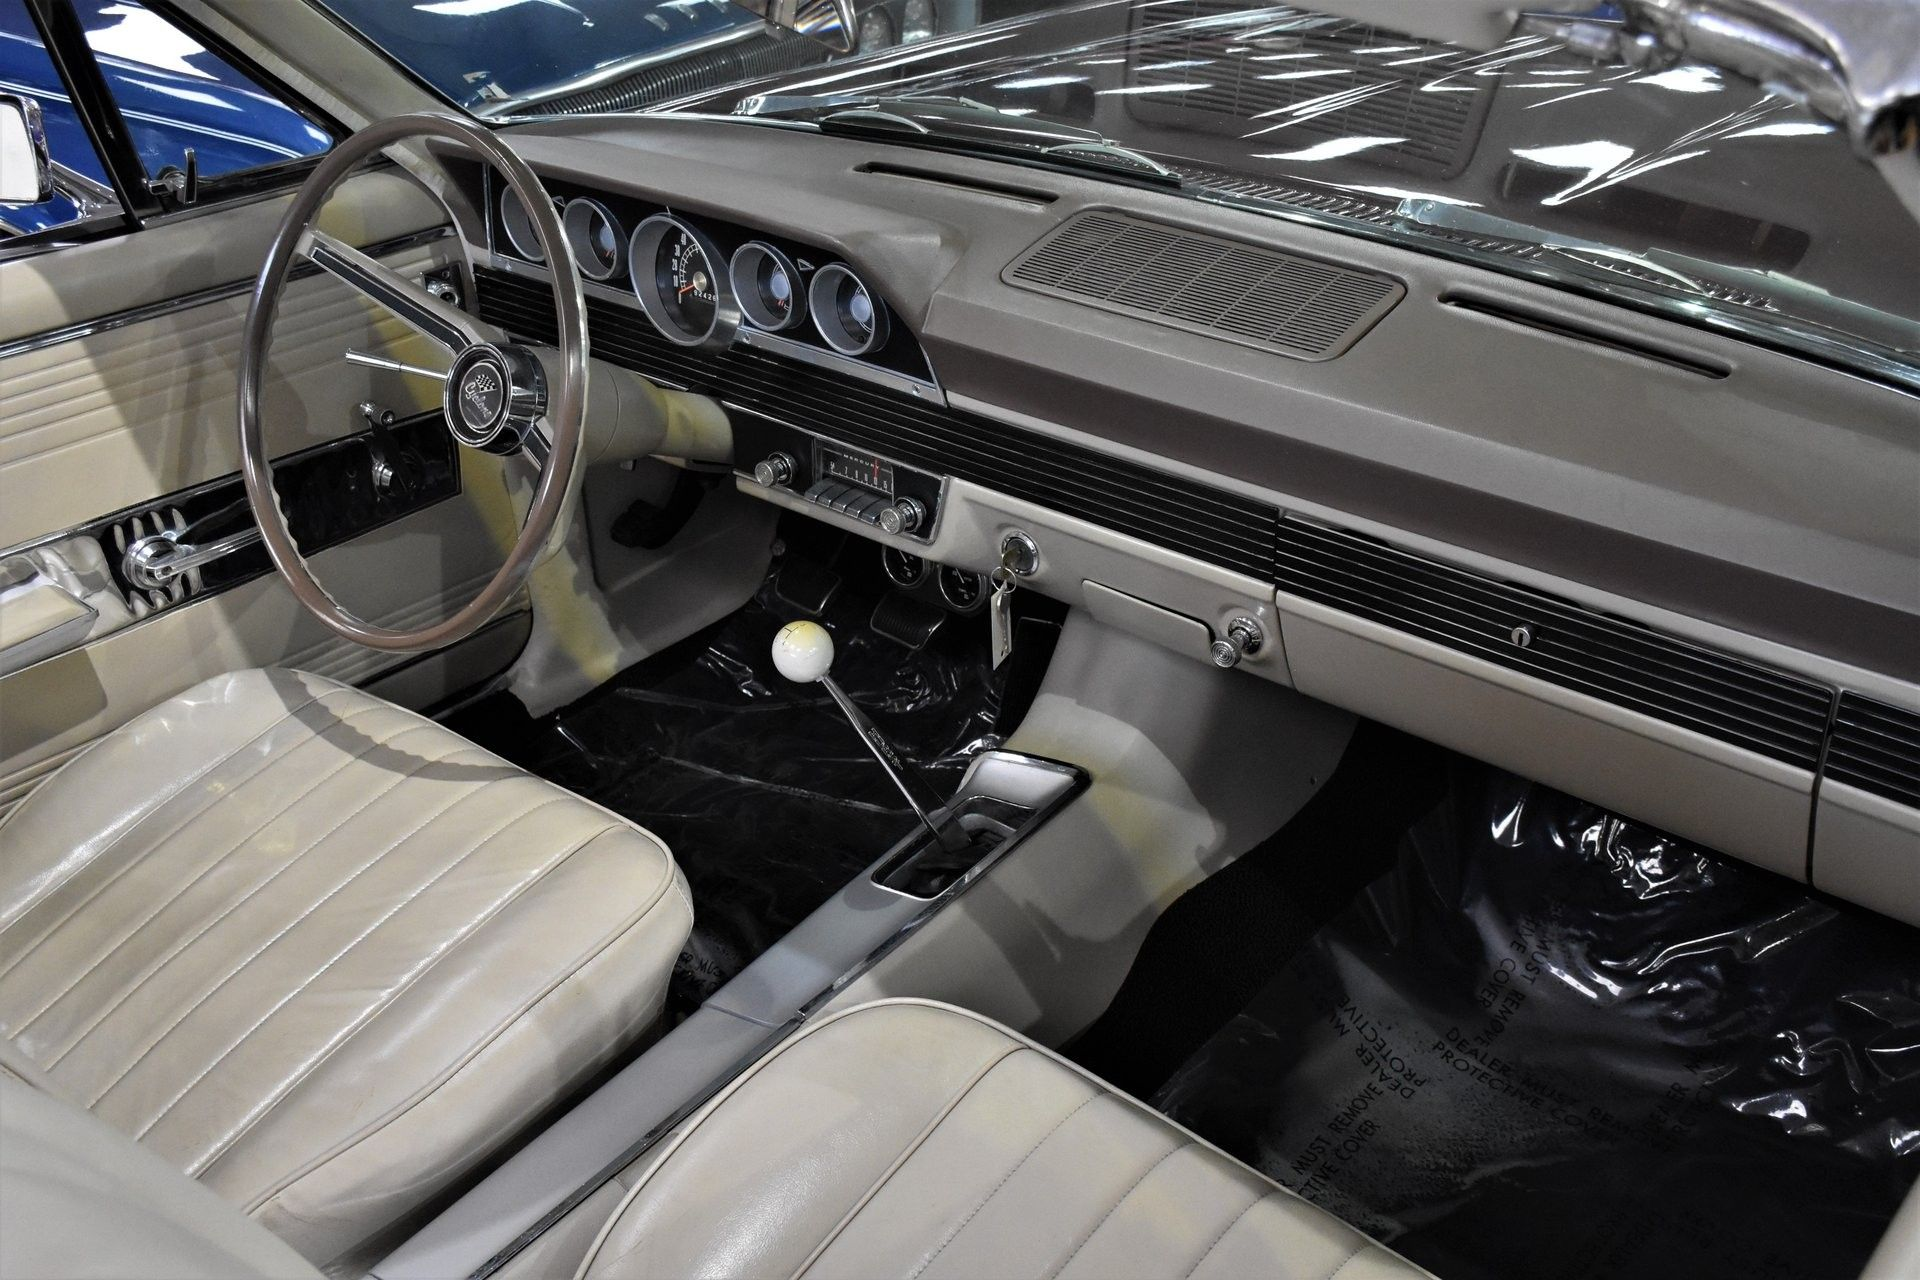 1966 Mercury Comet Cyclone 1 Of Only 1 305 Ever Produced In 2020 Fairlane Ford Fairlane Galaxie